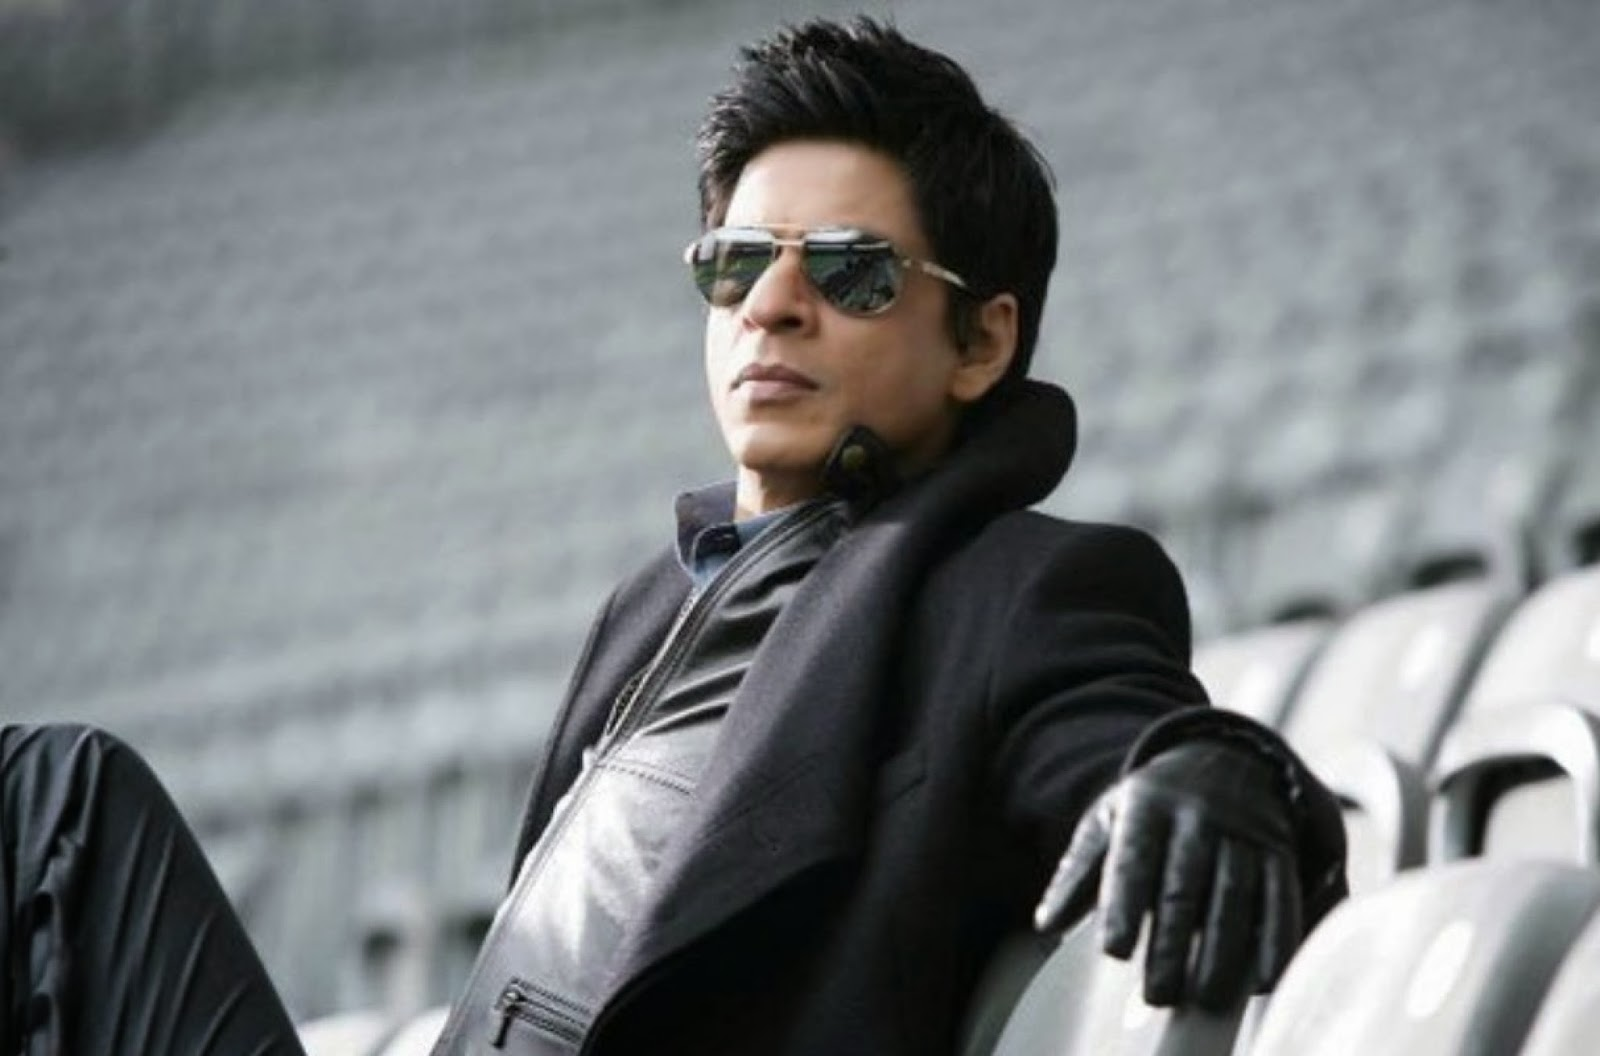 Global Pictures Gallery Shah Rukh Khan Full Hd Wallpapers: Shahrukh Khan Latest HD Wallpaper 2013